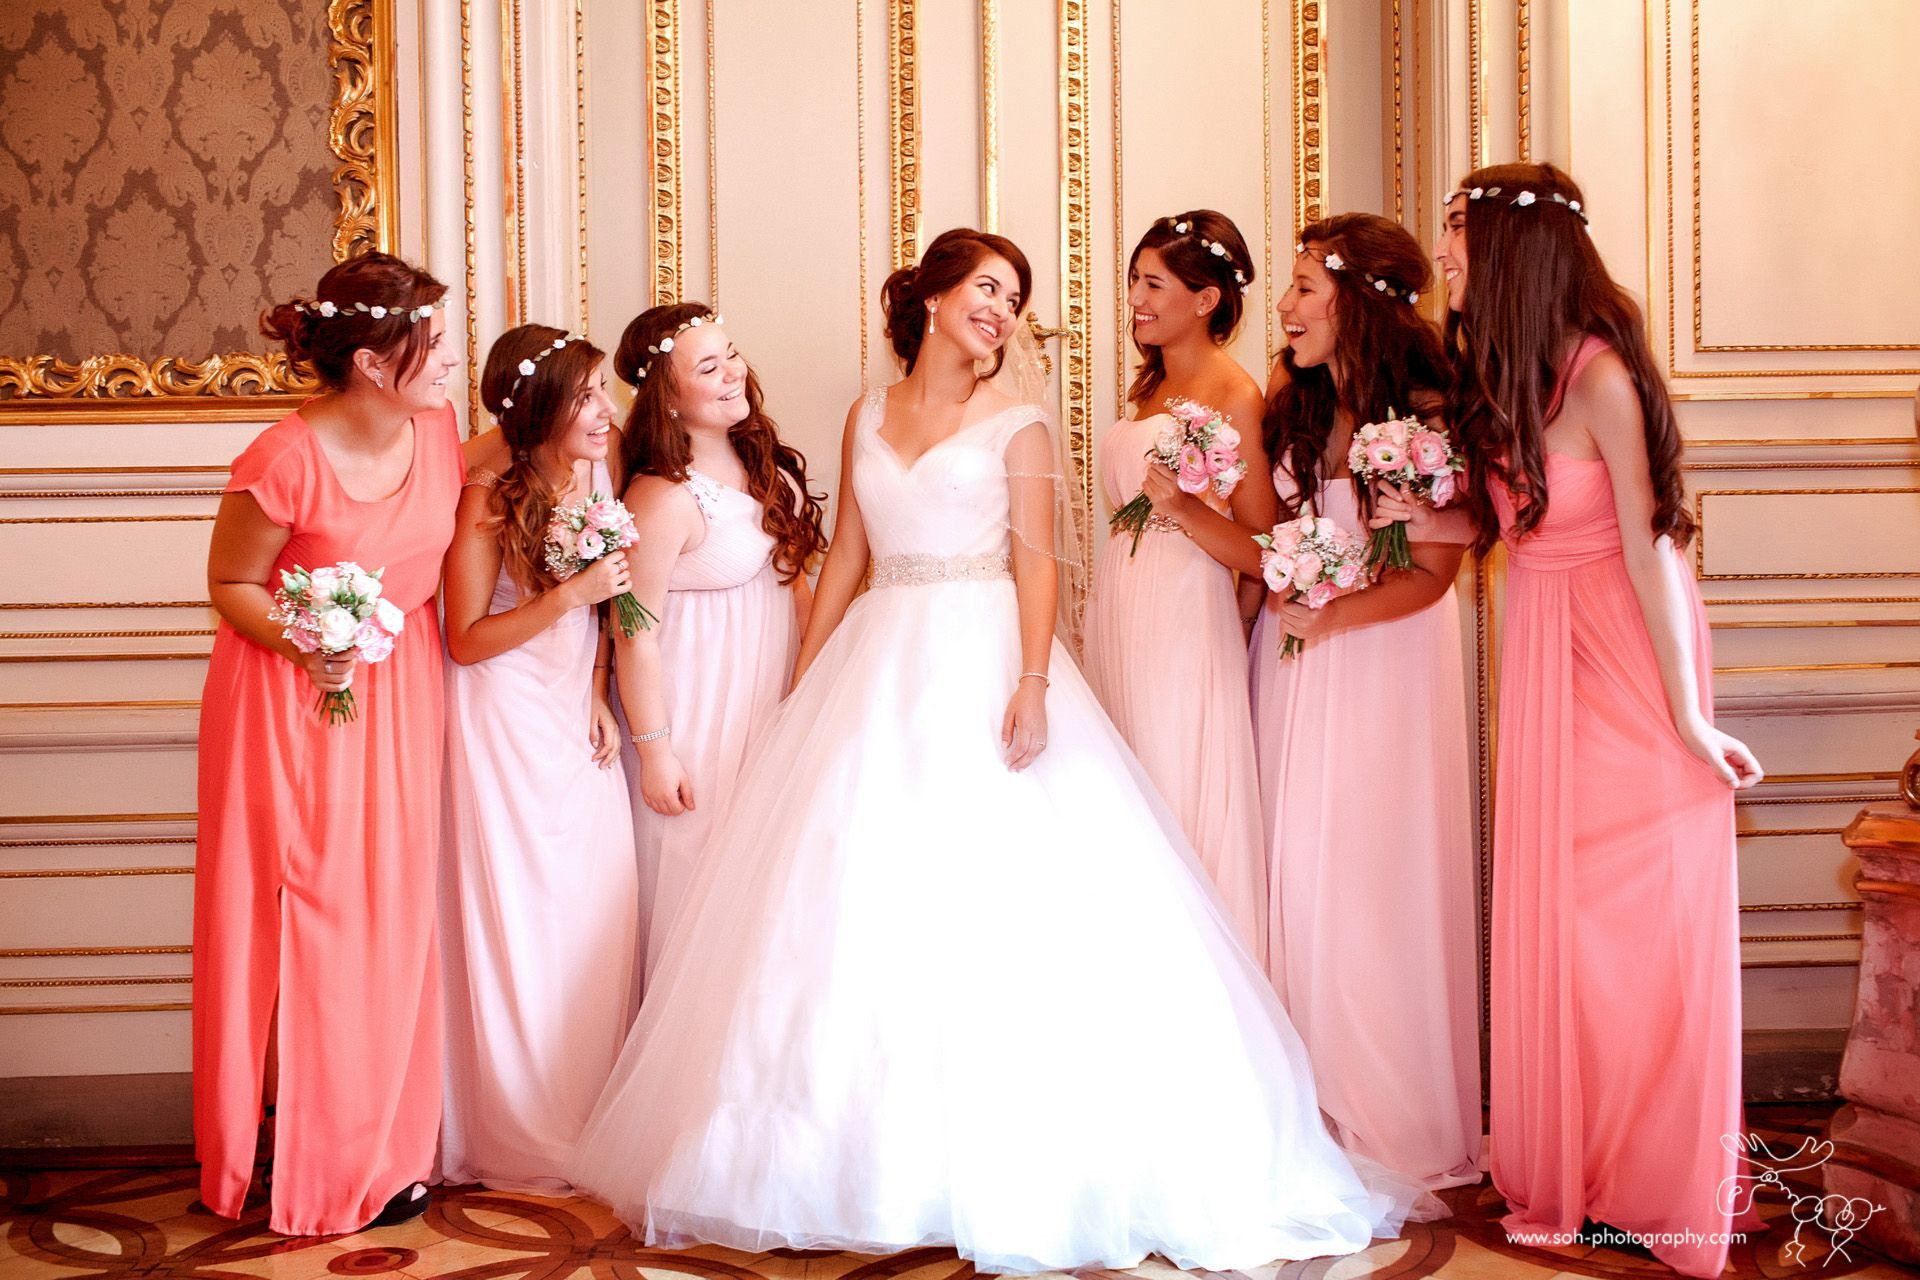 Bridesmaids #vienna #bridesmaids #sohphotography #wedding